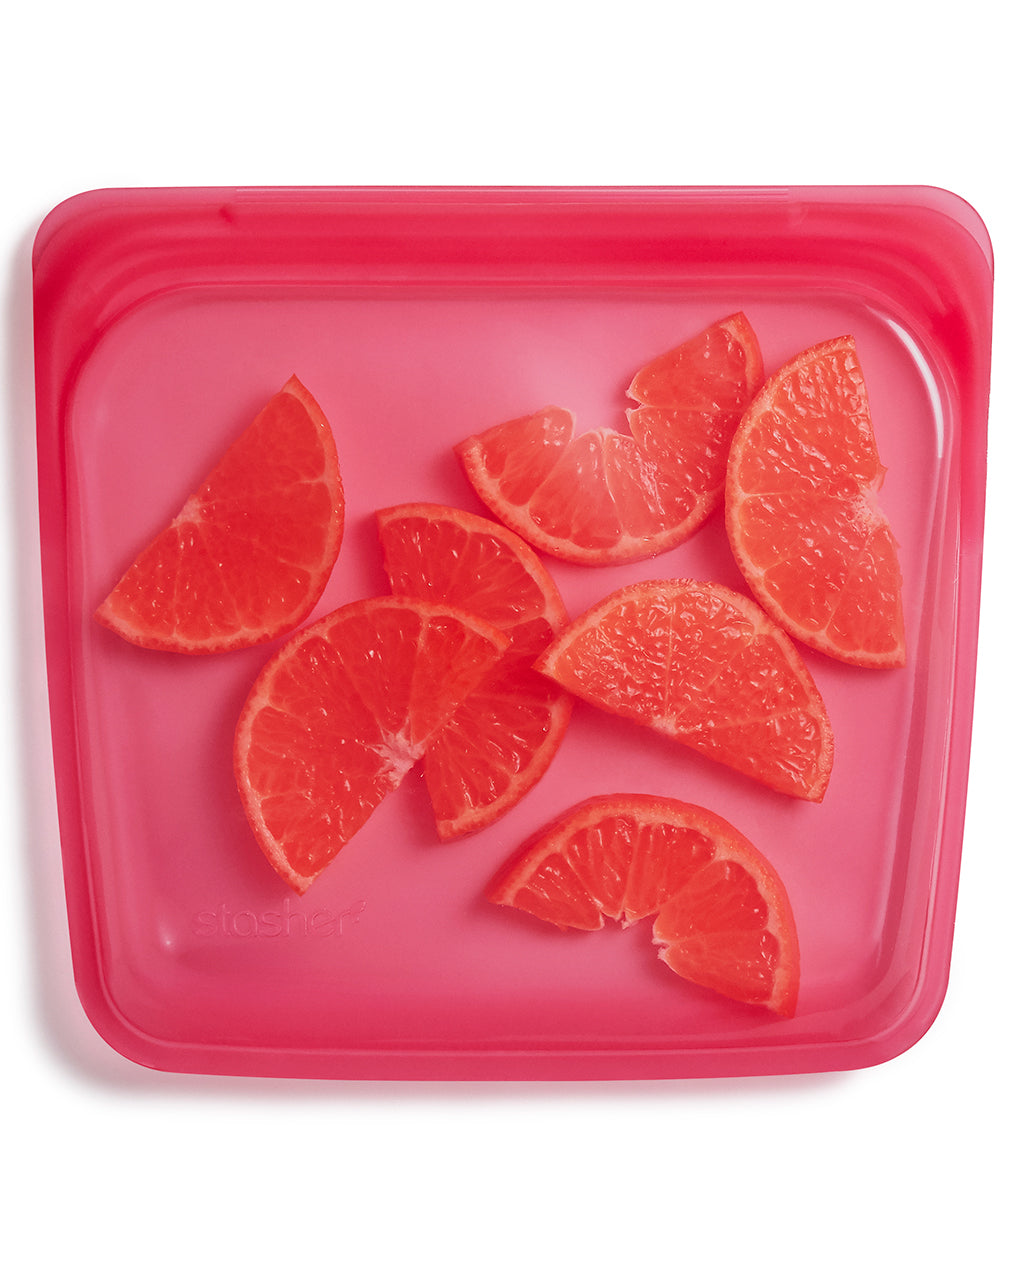 raspberry colored sandwich storage shown with oranges